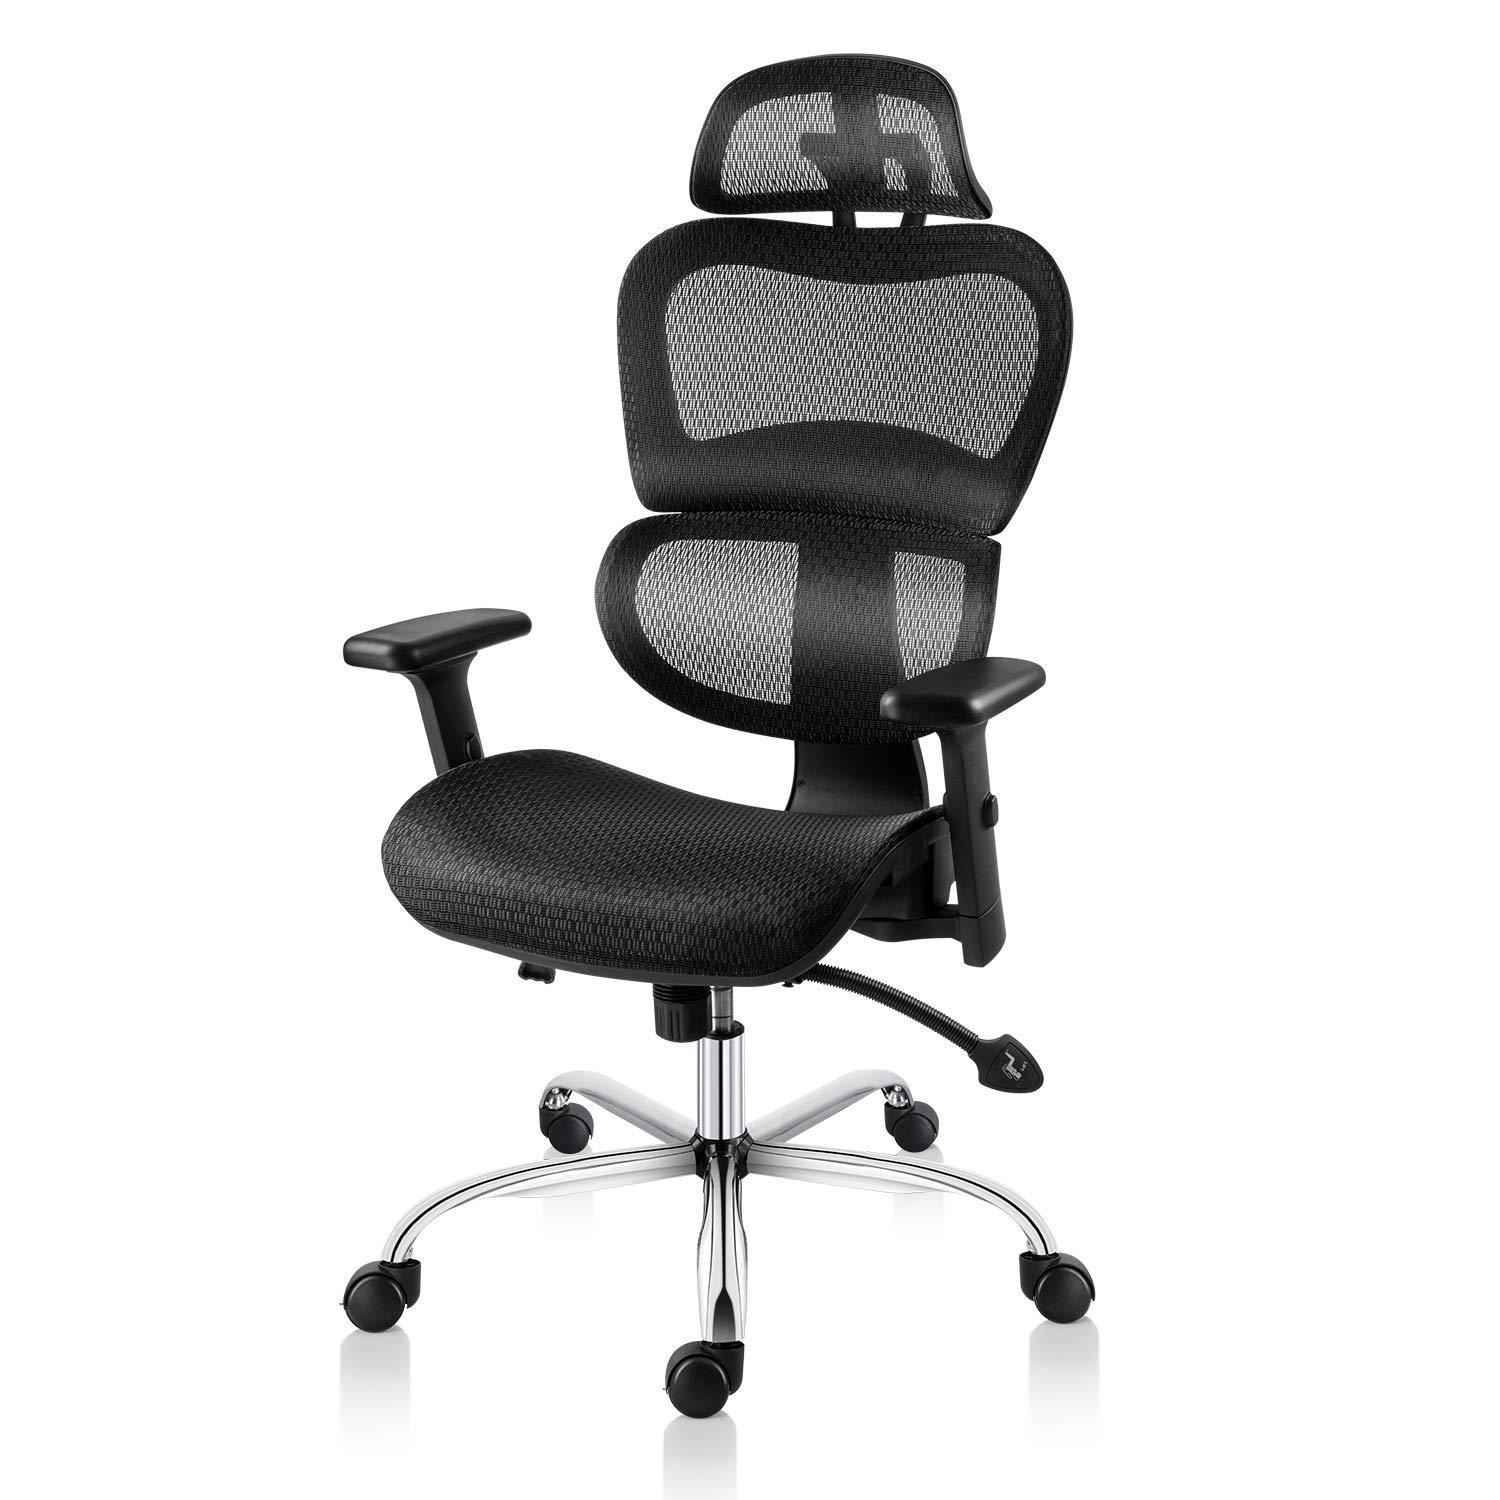 MDL Furniture Ergonomic Office Chair High Back Mesh Chair with Adjustable Headrest and Lumbar Support 3D Armrest Home Office Chair(Black)